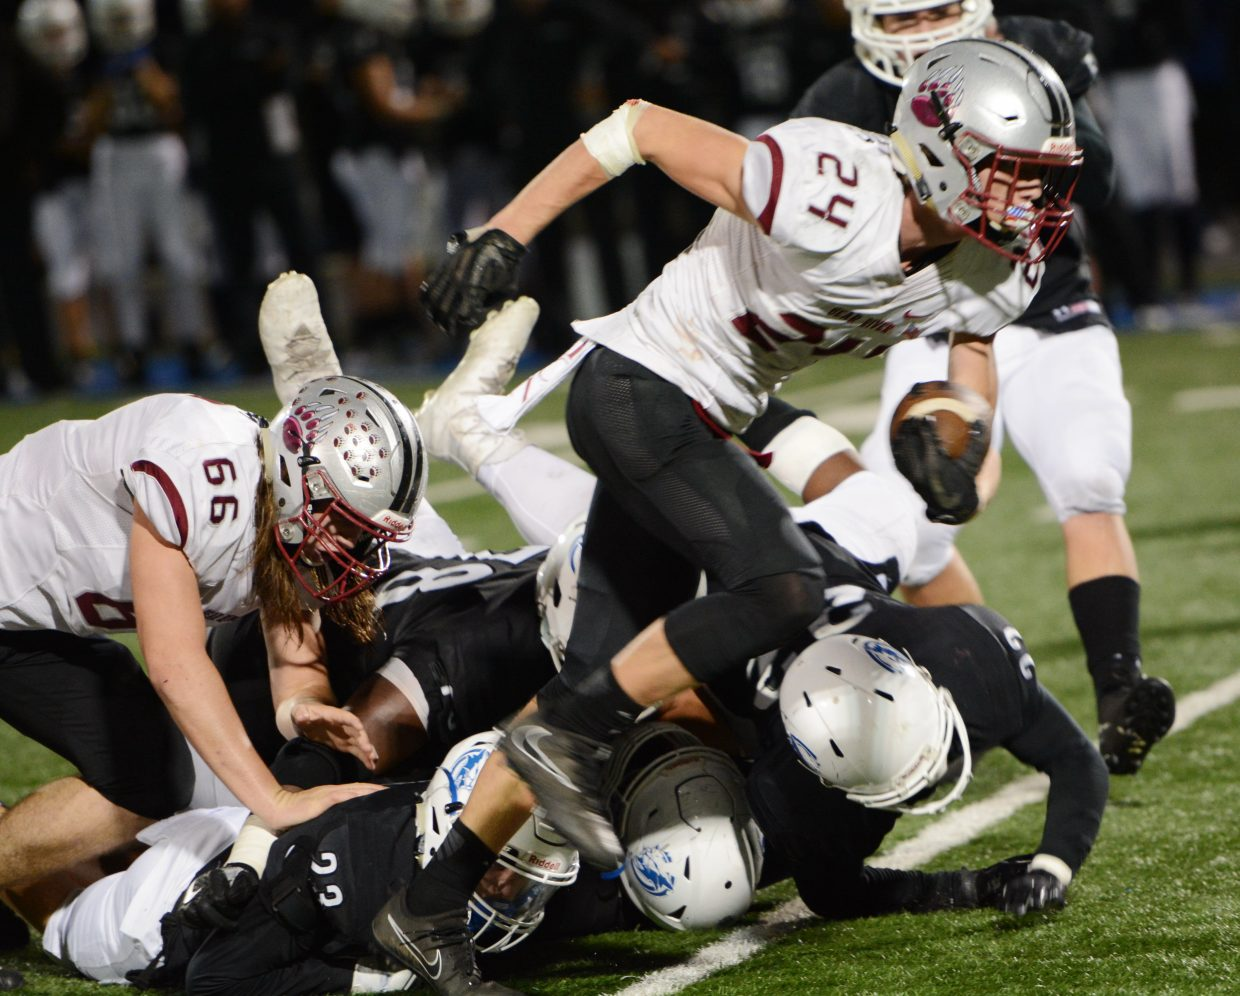 Bear River's Tre Maronic runs the ball during a playoff game against Capital Christian Thursday.